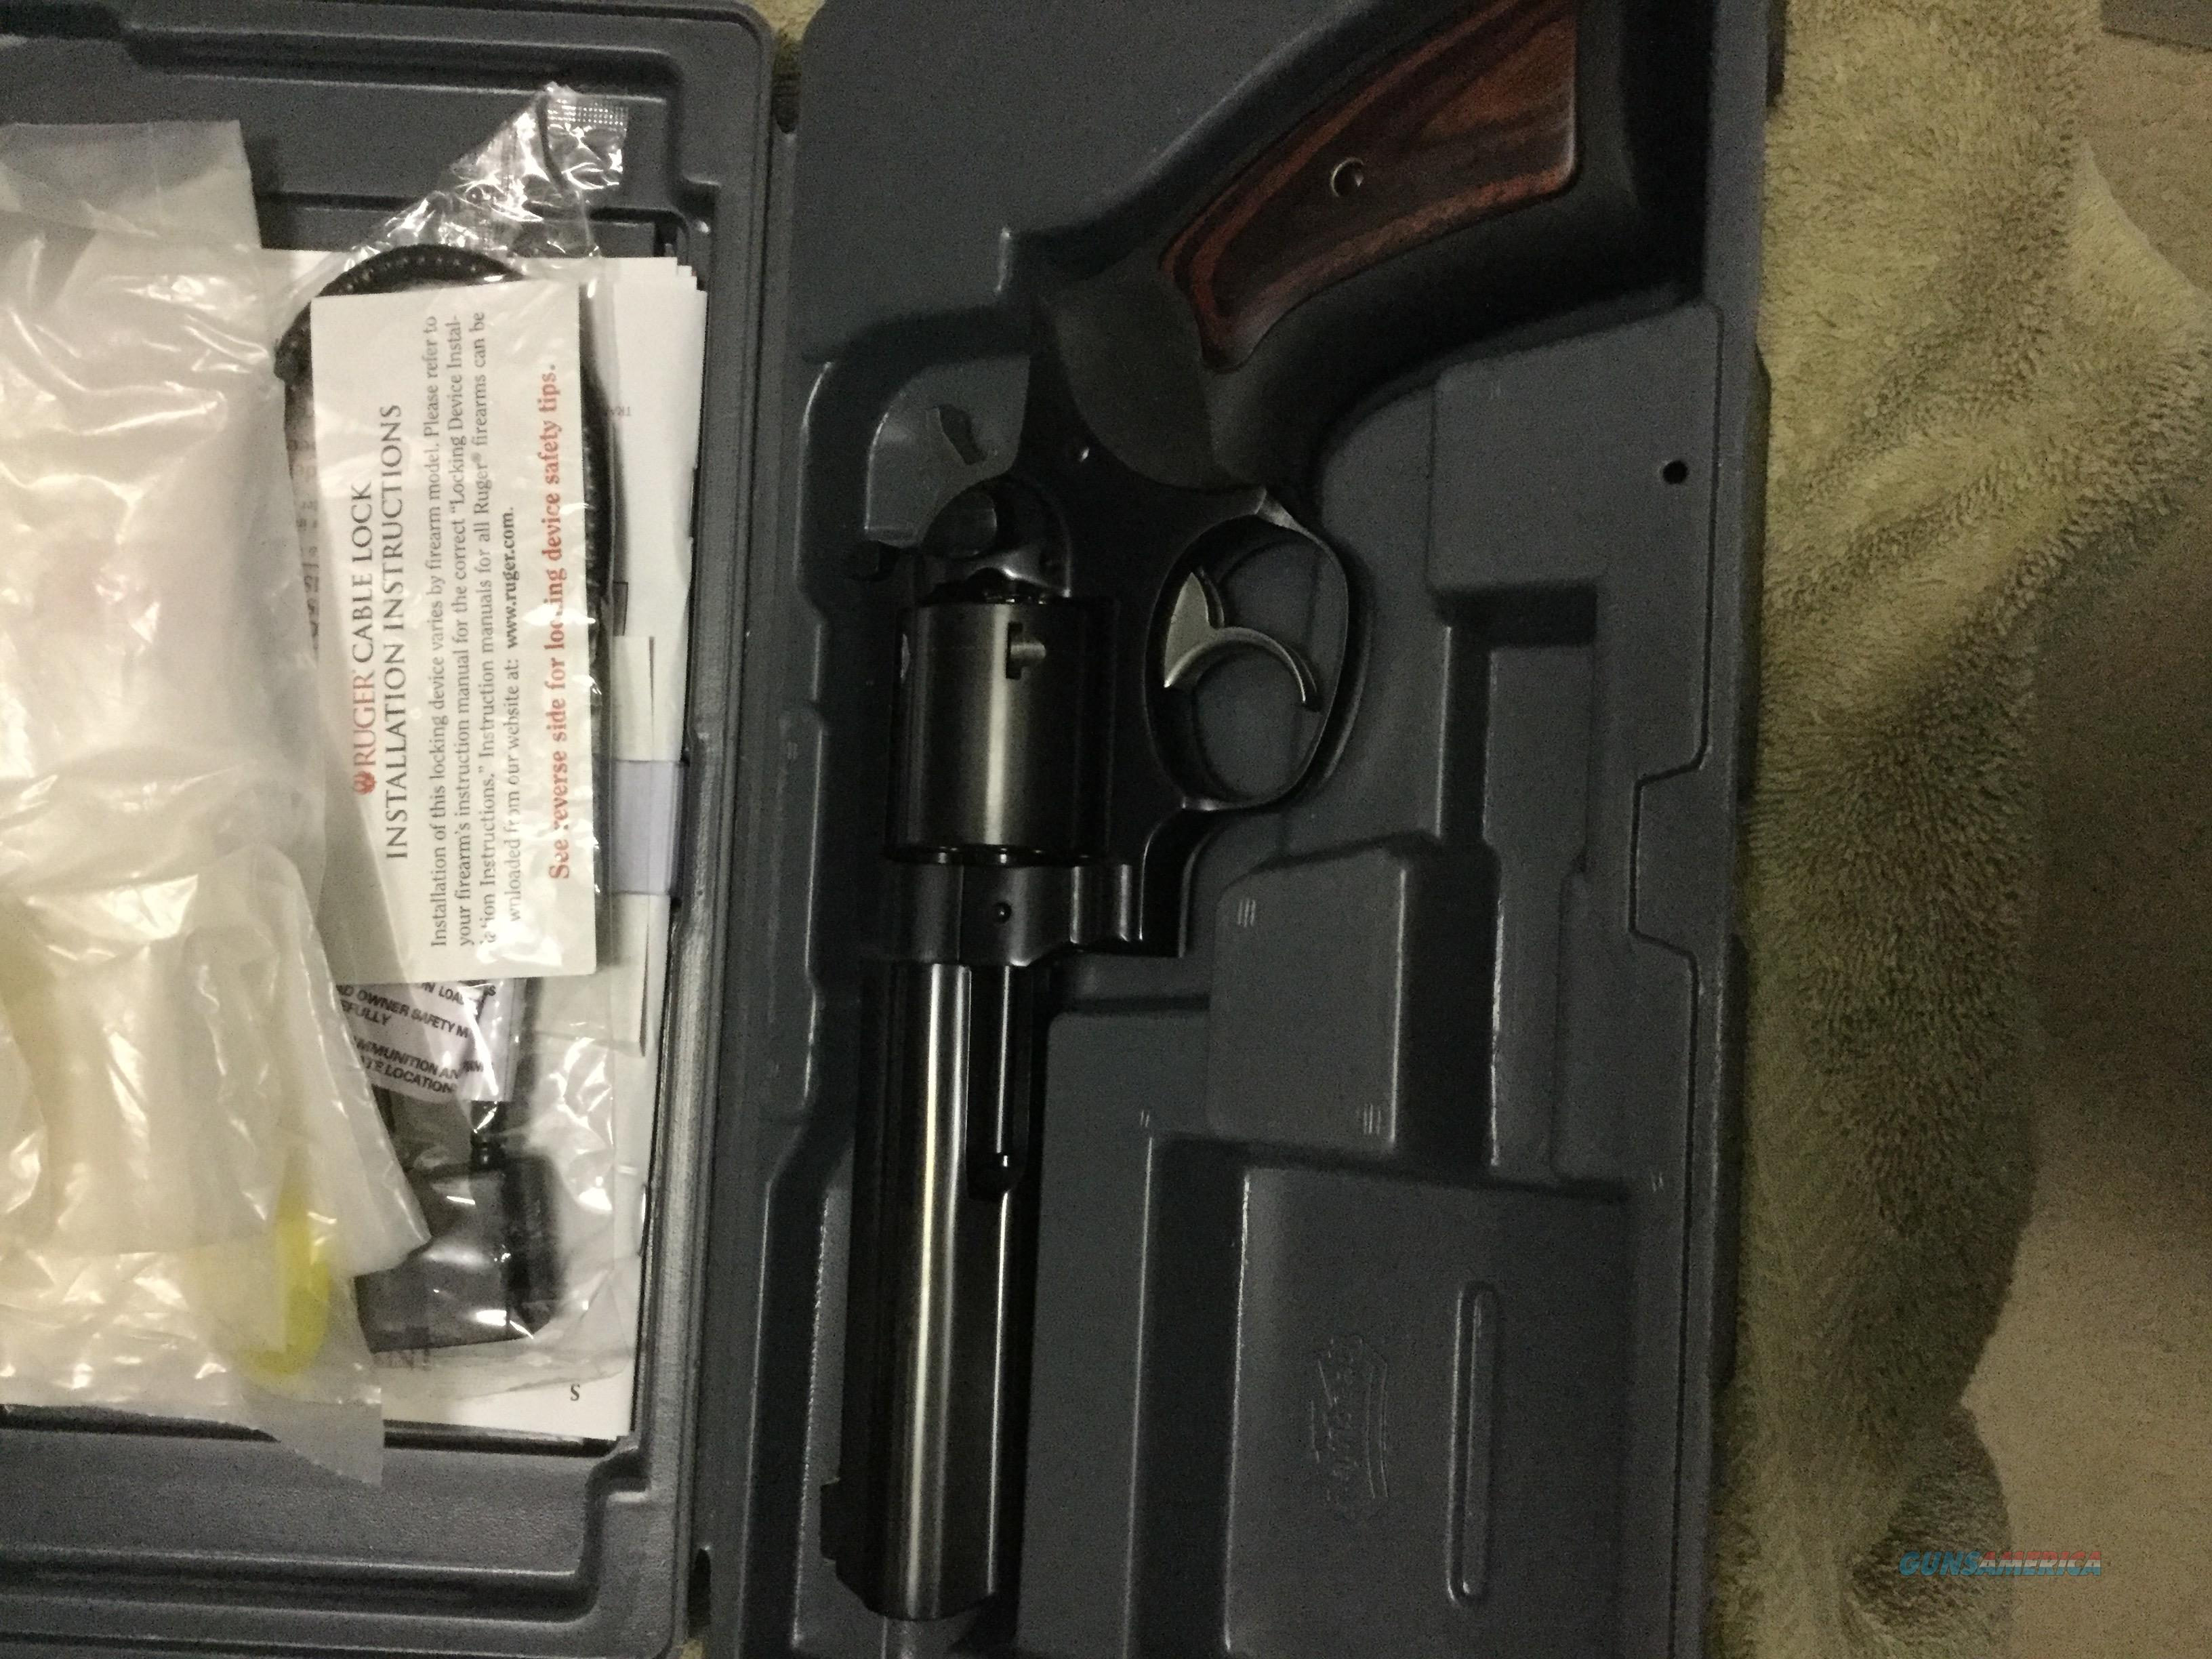 GP100 44 Special Lipsey Exclusive 5.5 full lug barrel blued NIB  Guns > Pistols > Ruger Double Action Revolver > GP100